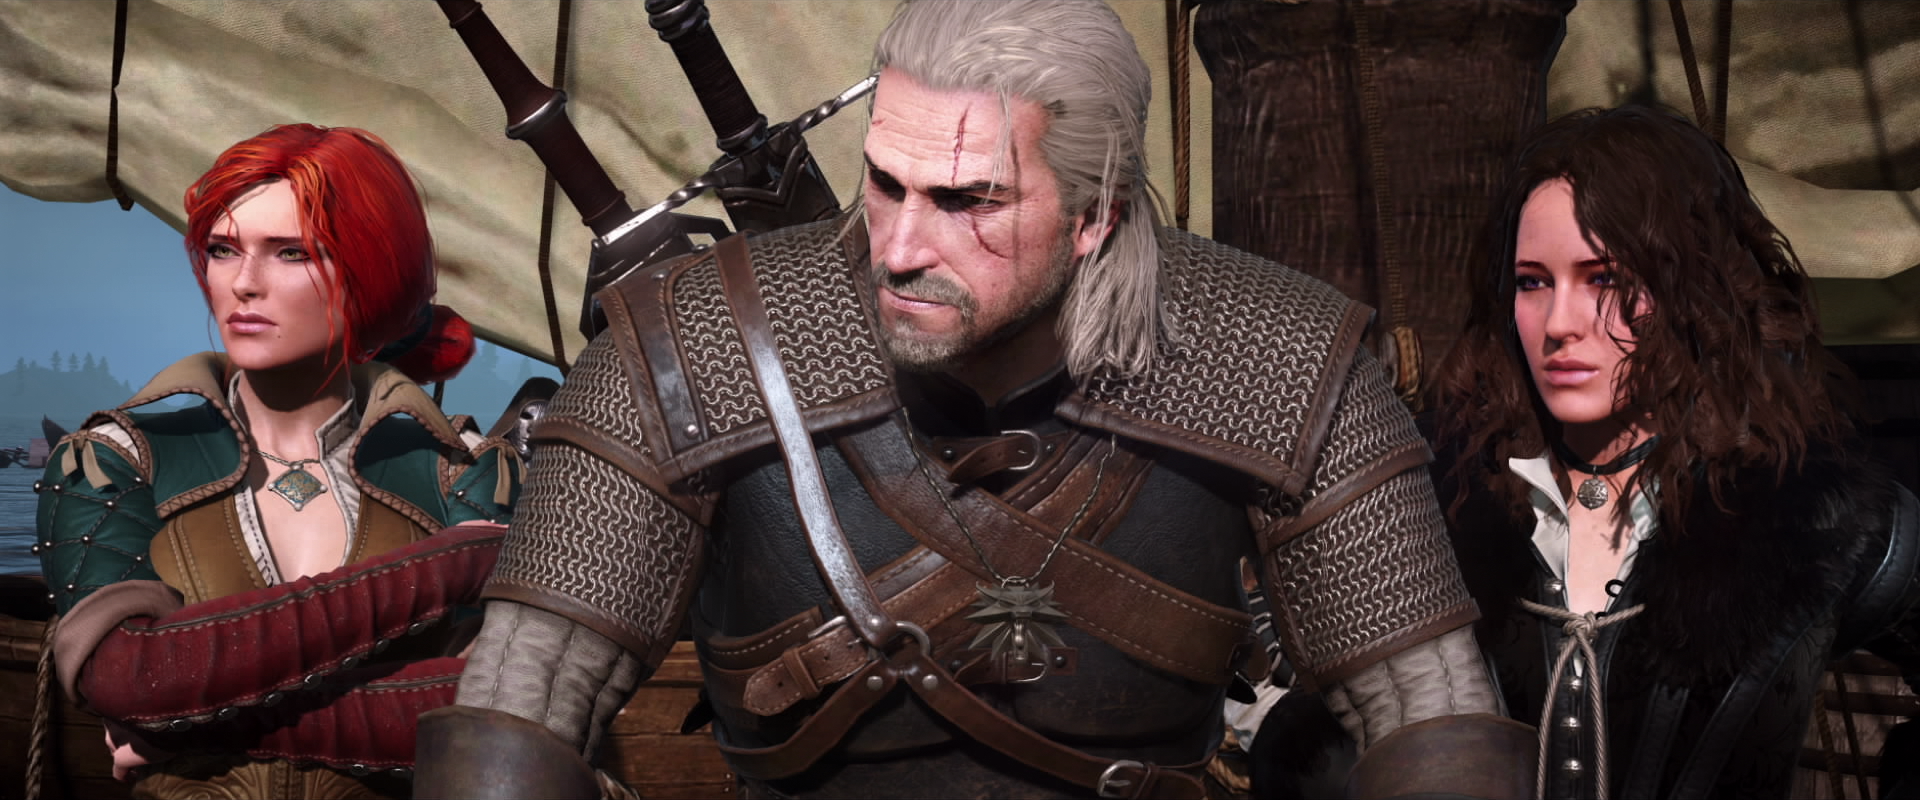 The Witcher 3's best quests   PC Gamer